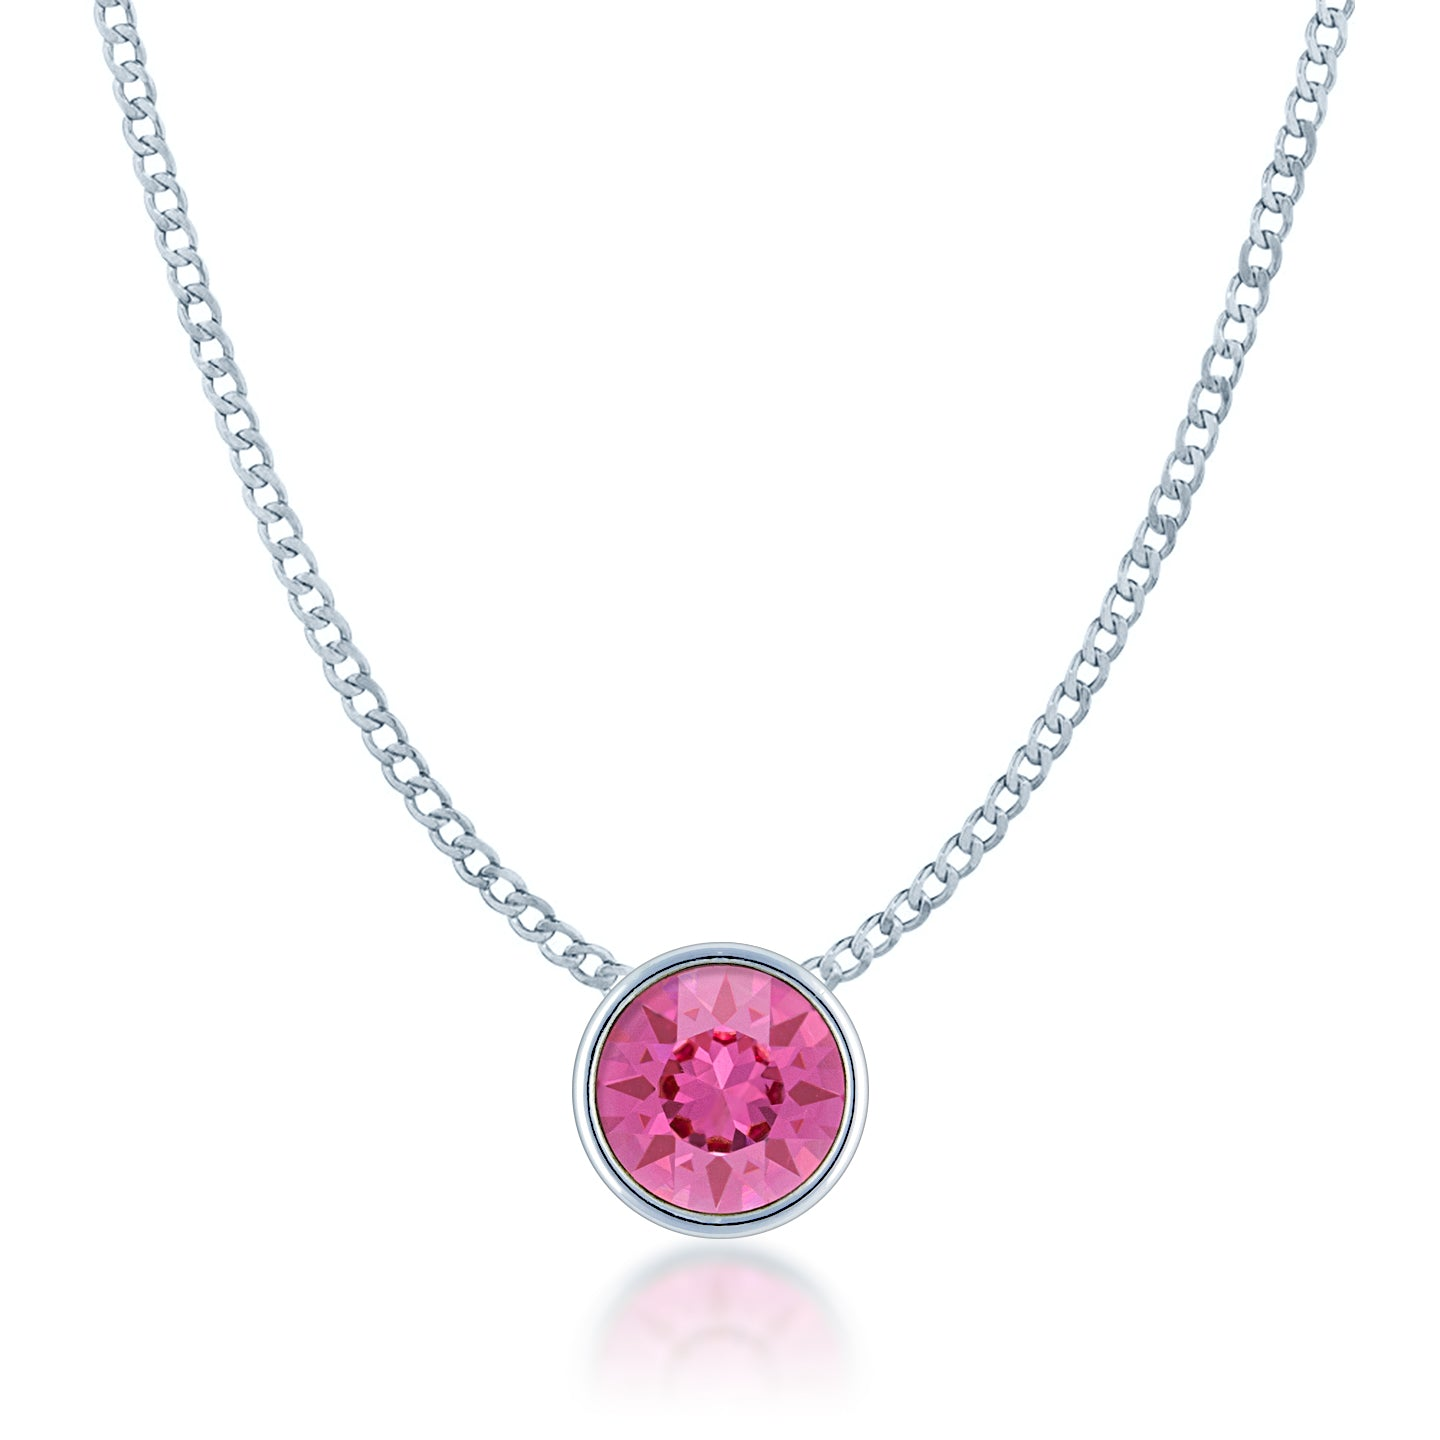 Harley Small Pendant Necklace with Pink Rose Round Crystals from Swarovski Silver Toned Rhodium Plated - Ed Heart